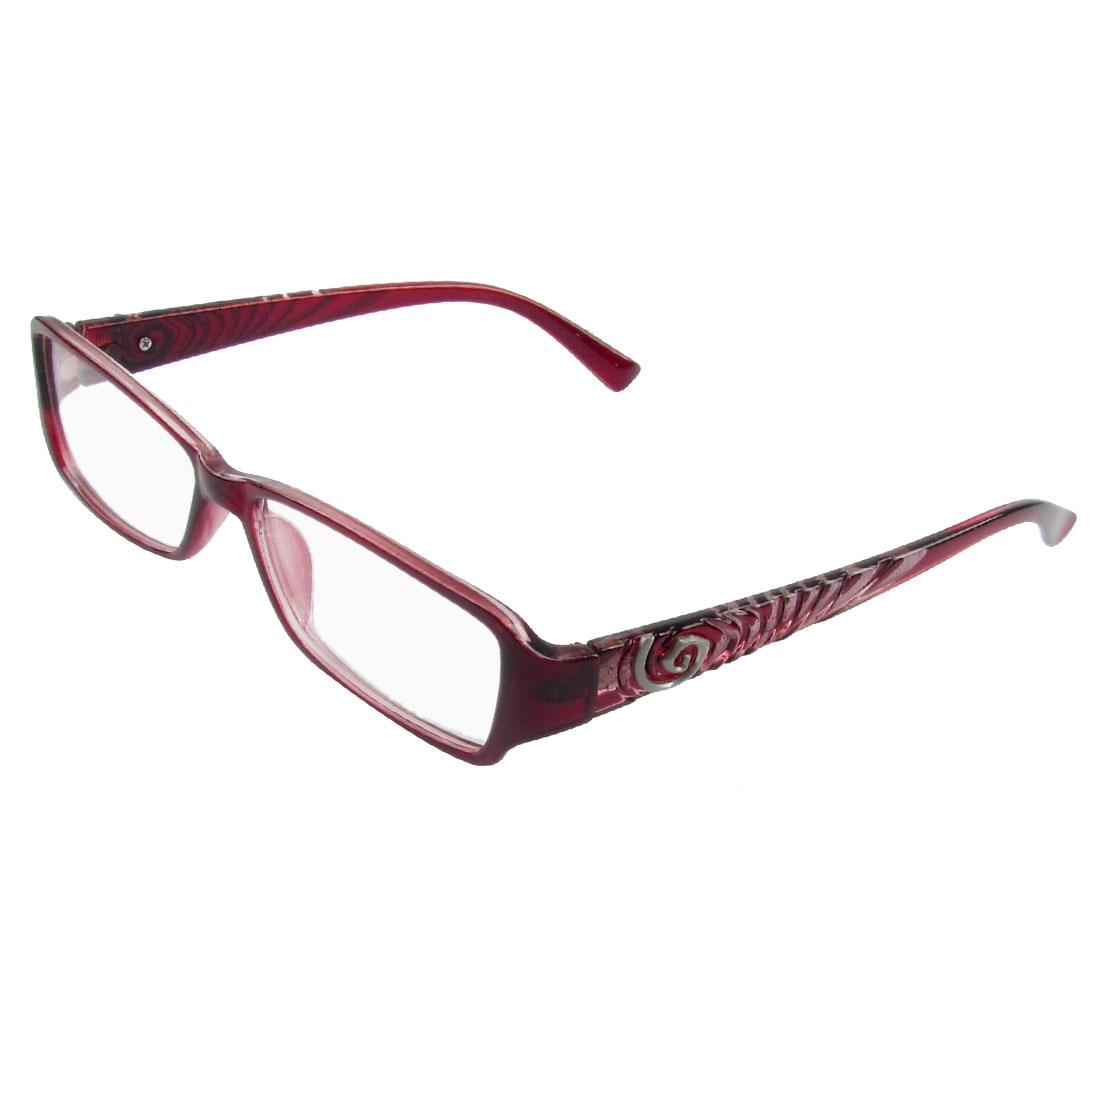 Sangria Plastic Full Frame Spiral Decor Arms Plano Glasses for Ladies